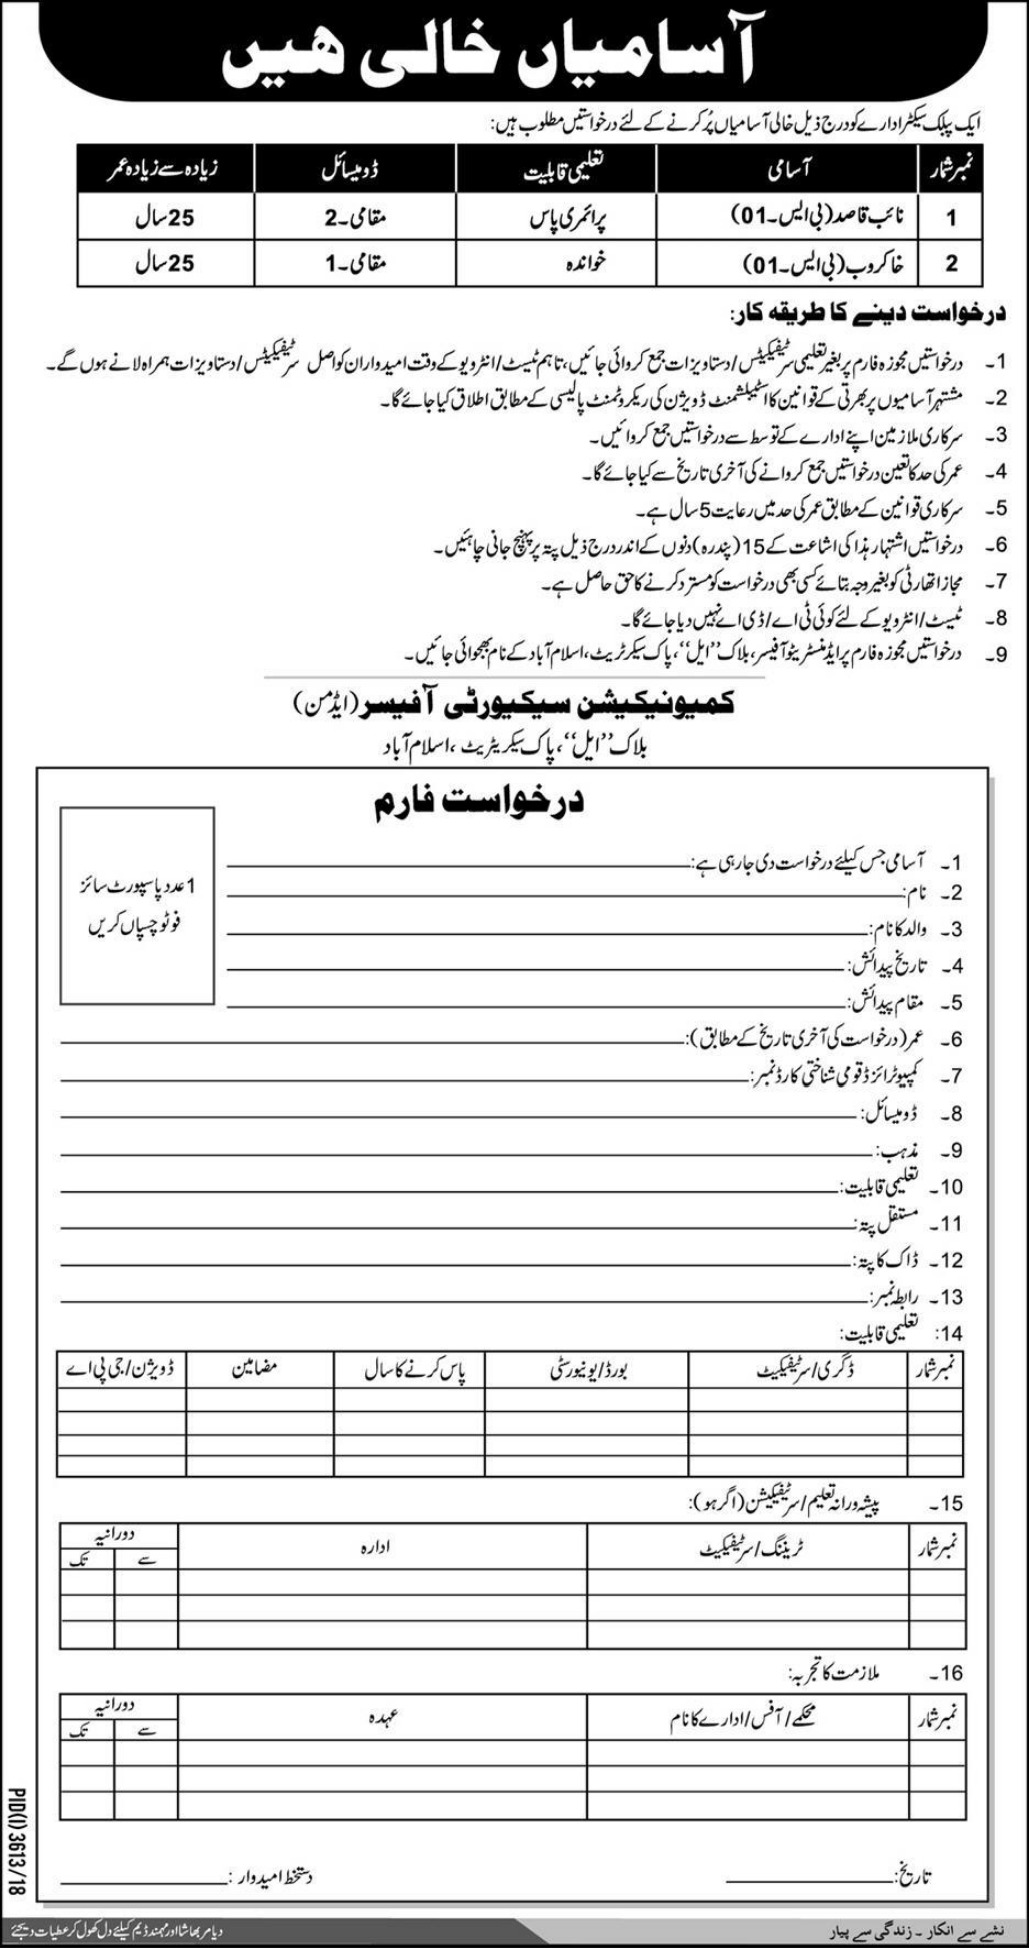 Public Sector Organization Jobs 2019 Islamabad Latest